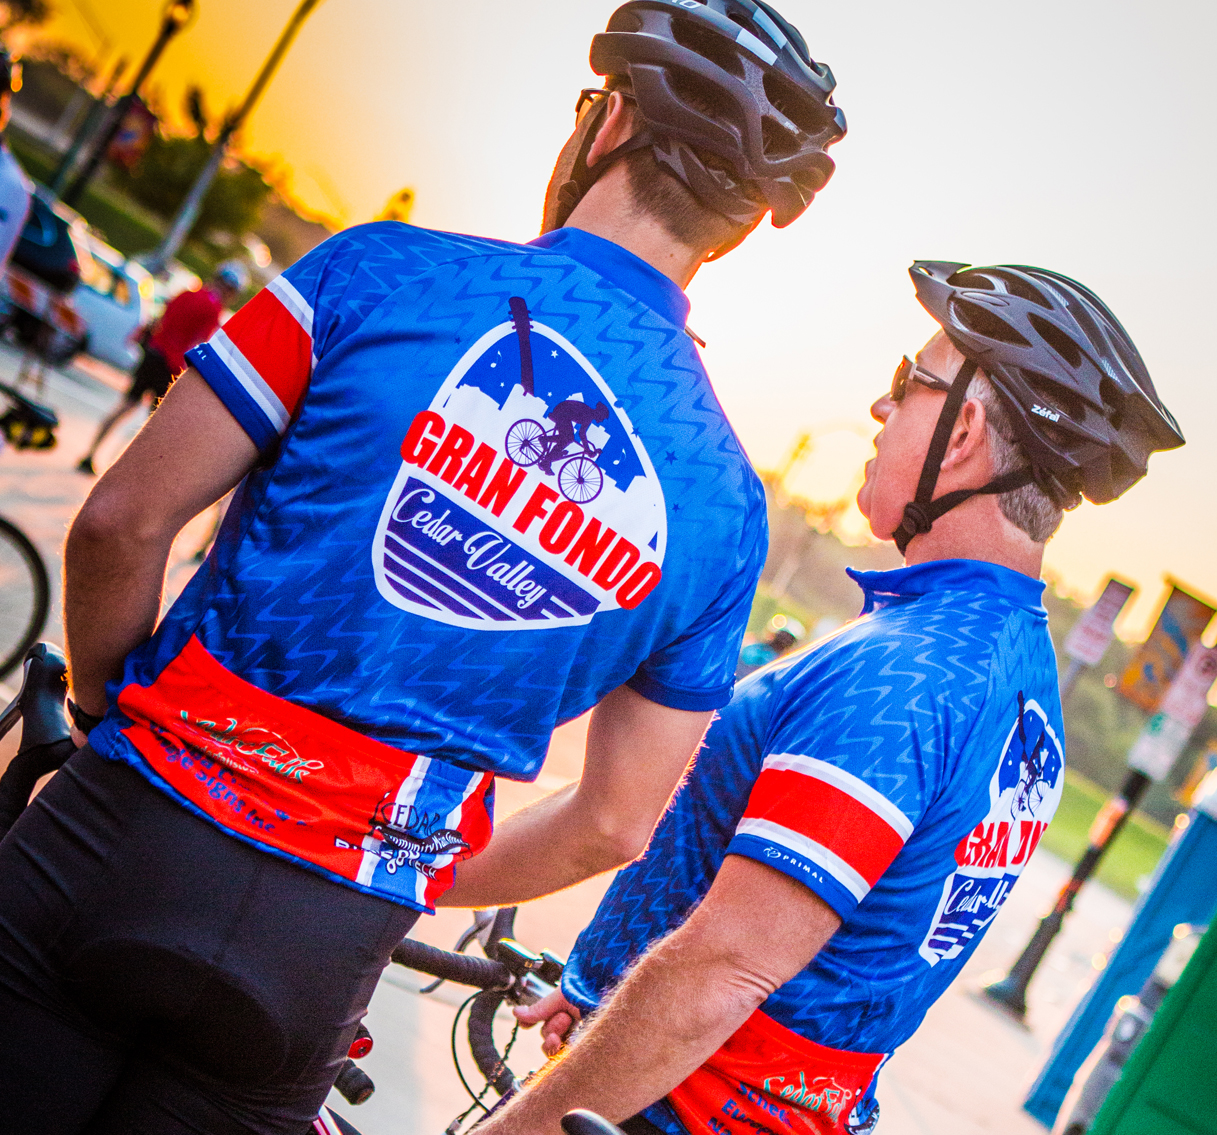 Bike the Cedar Valley during the Gran Fondo Cedar Valley endurance bike ride!